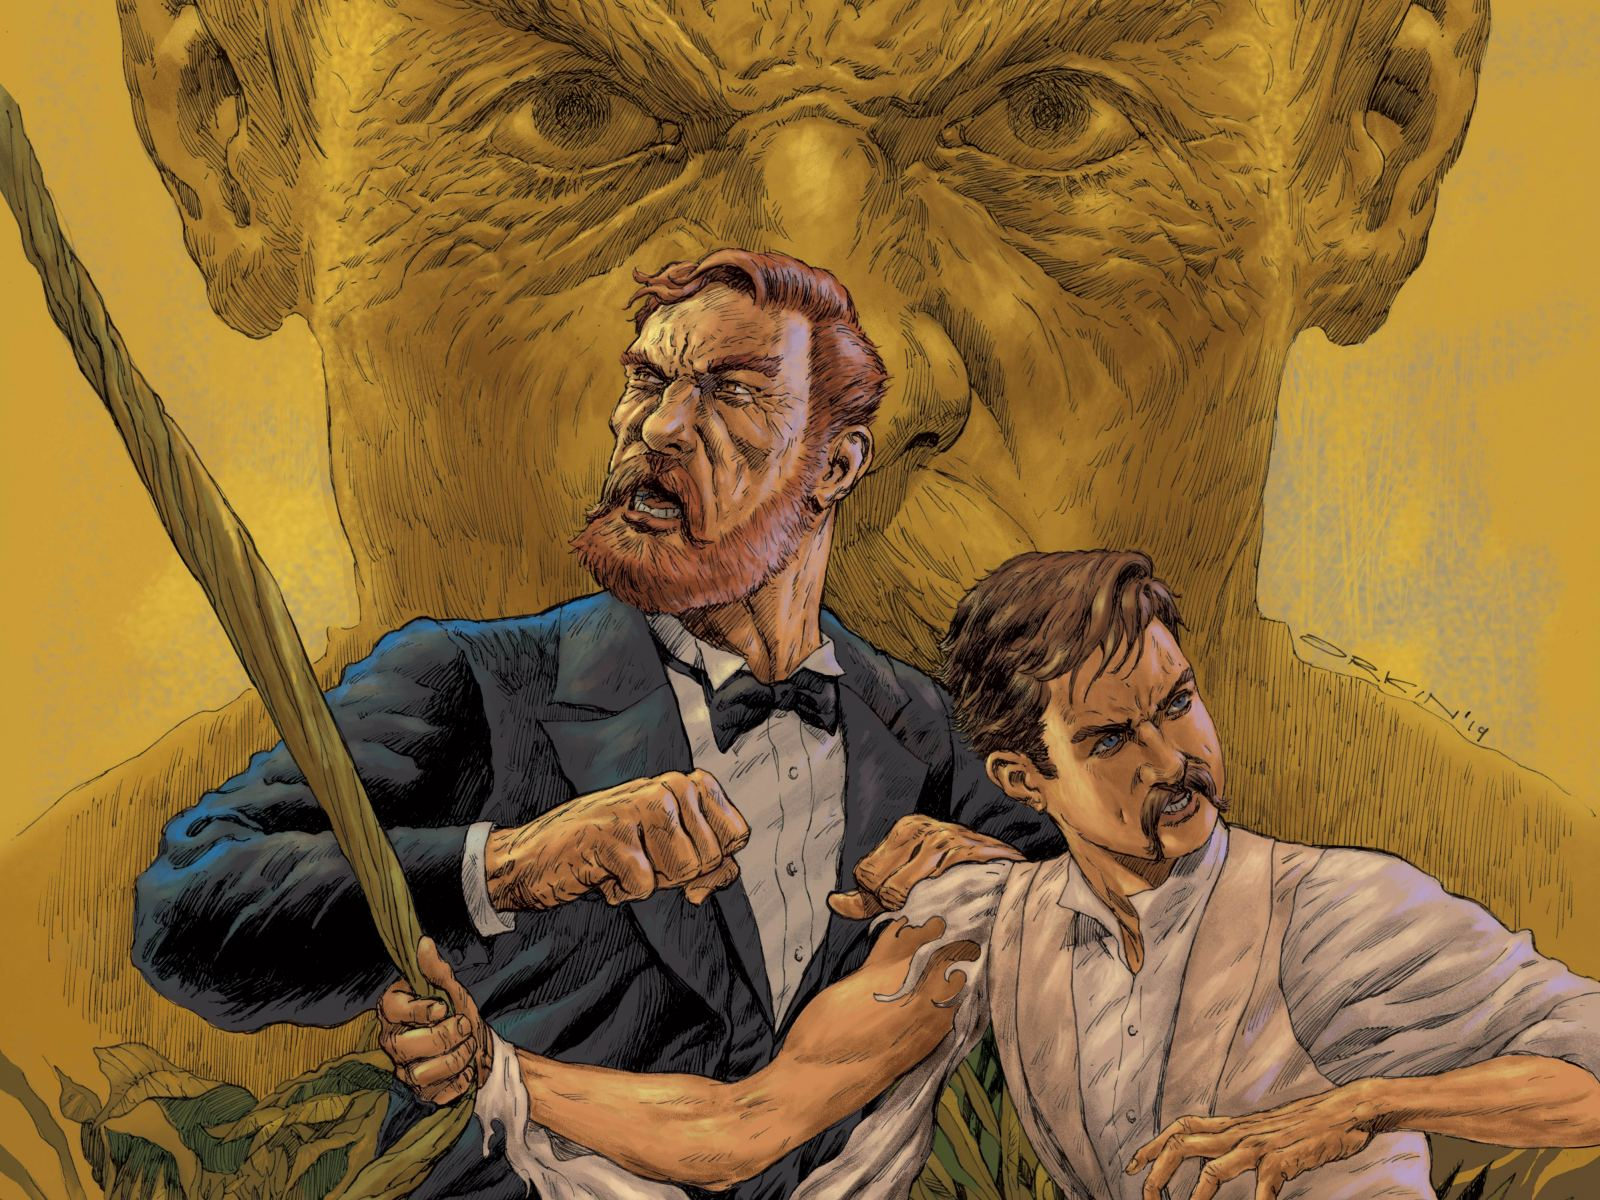 """""""Stoker & Wells: Order of the Golden Dawn"""" - Graphic Novel by Steven Peros, Art by Barry Orkin"""